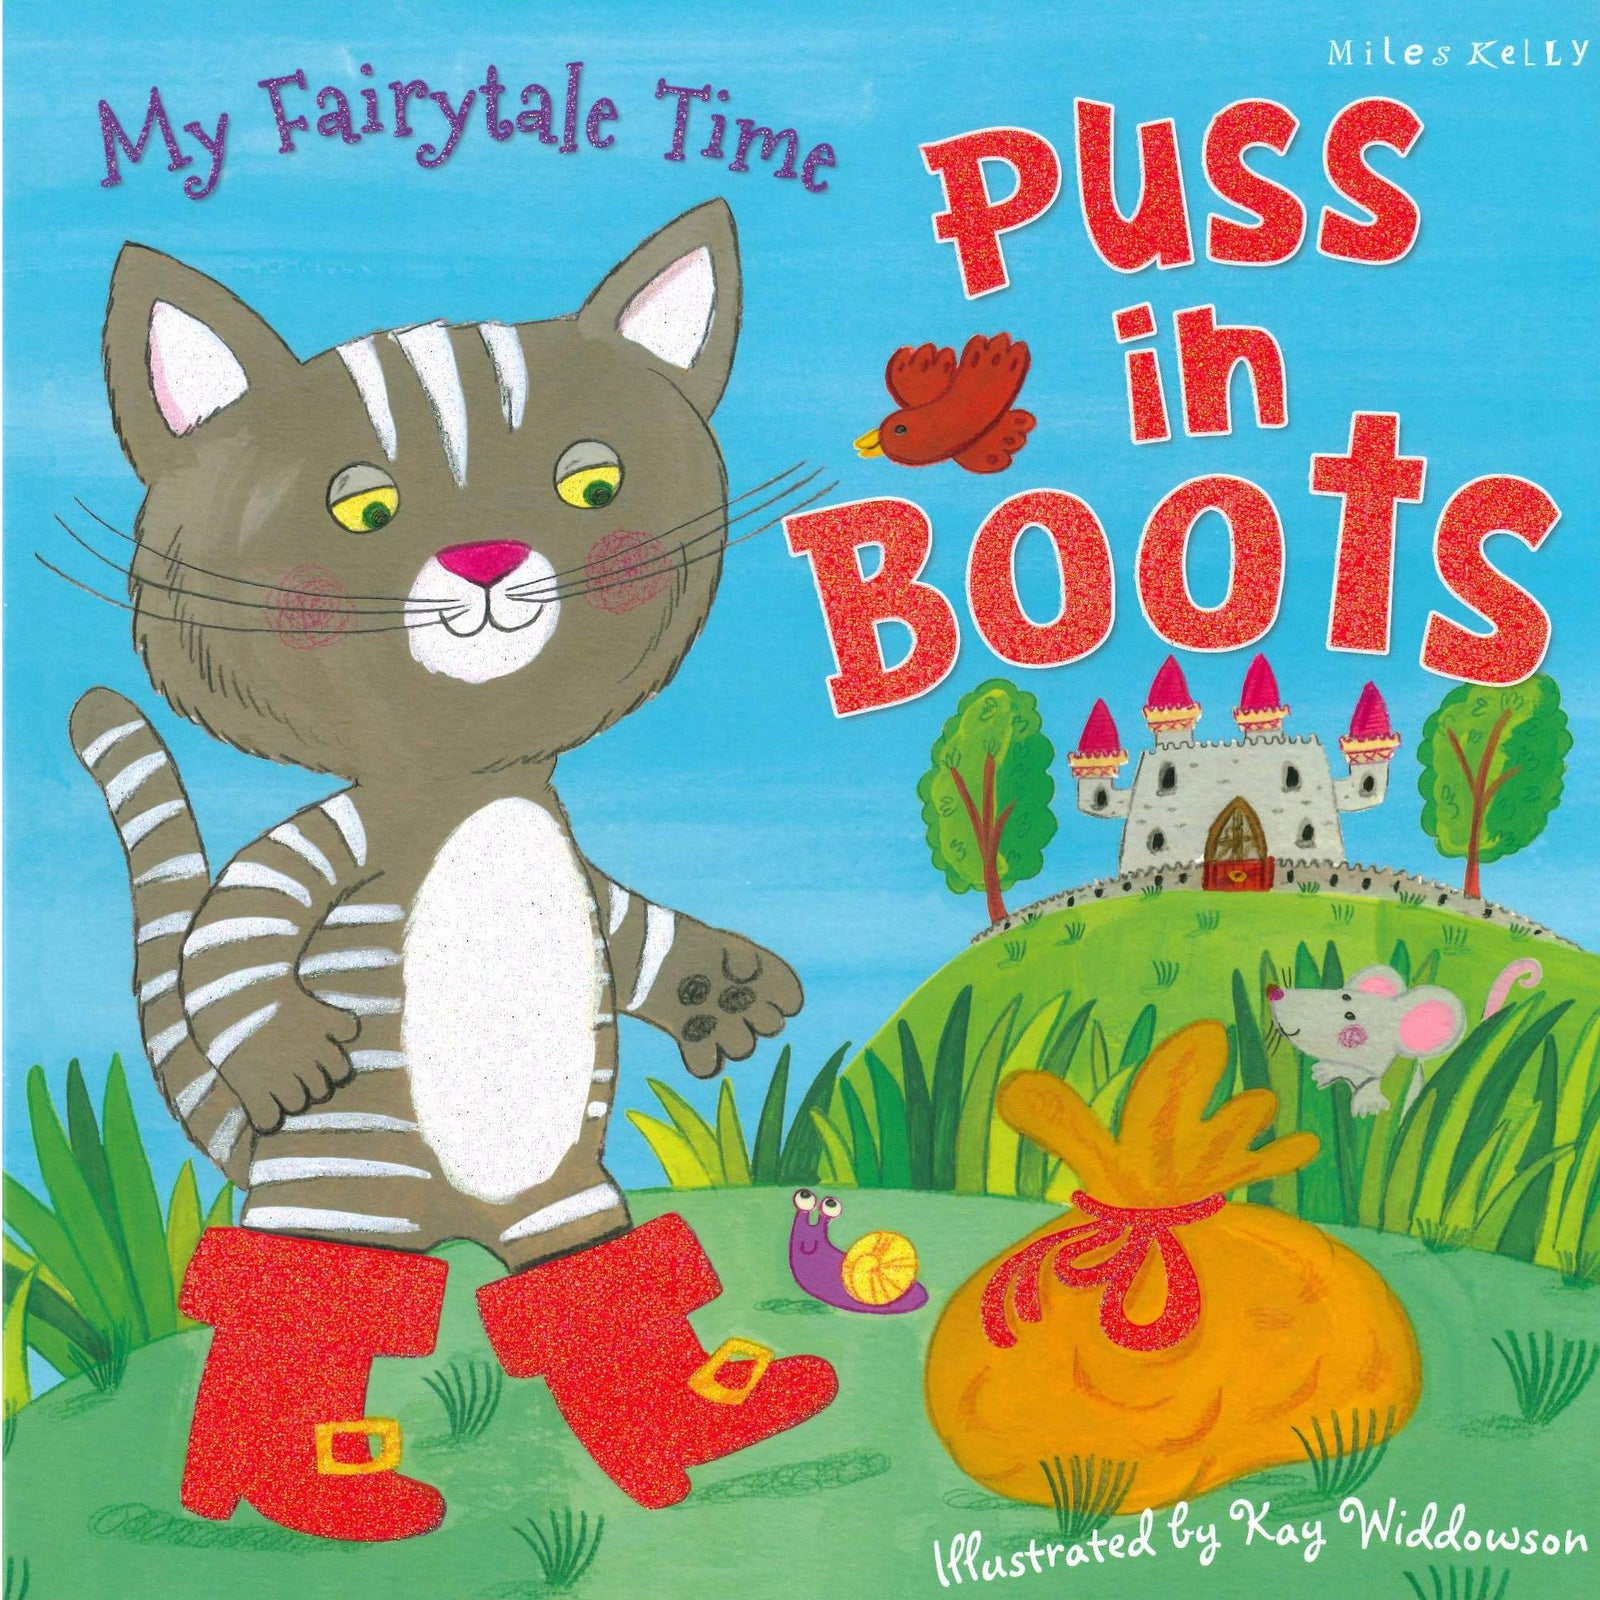 Puss In Boots (My Fairytale Time)